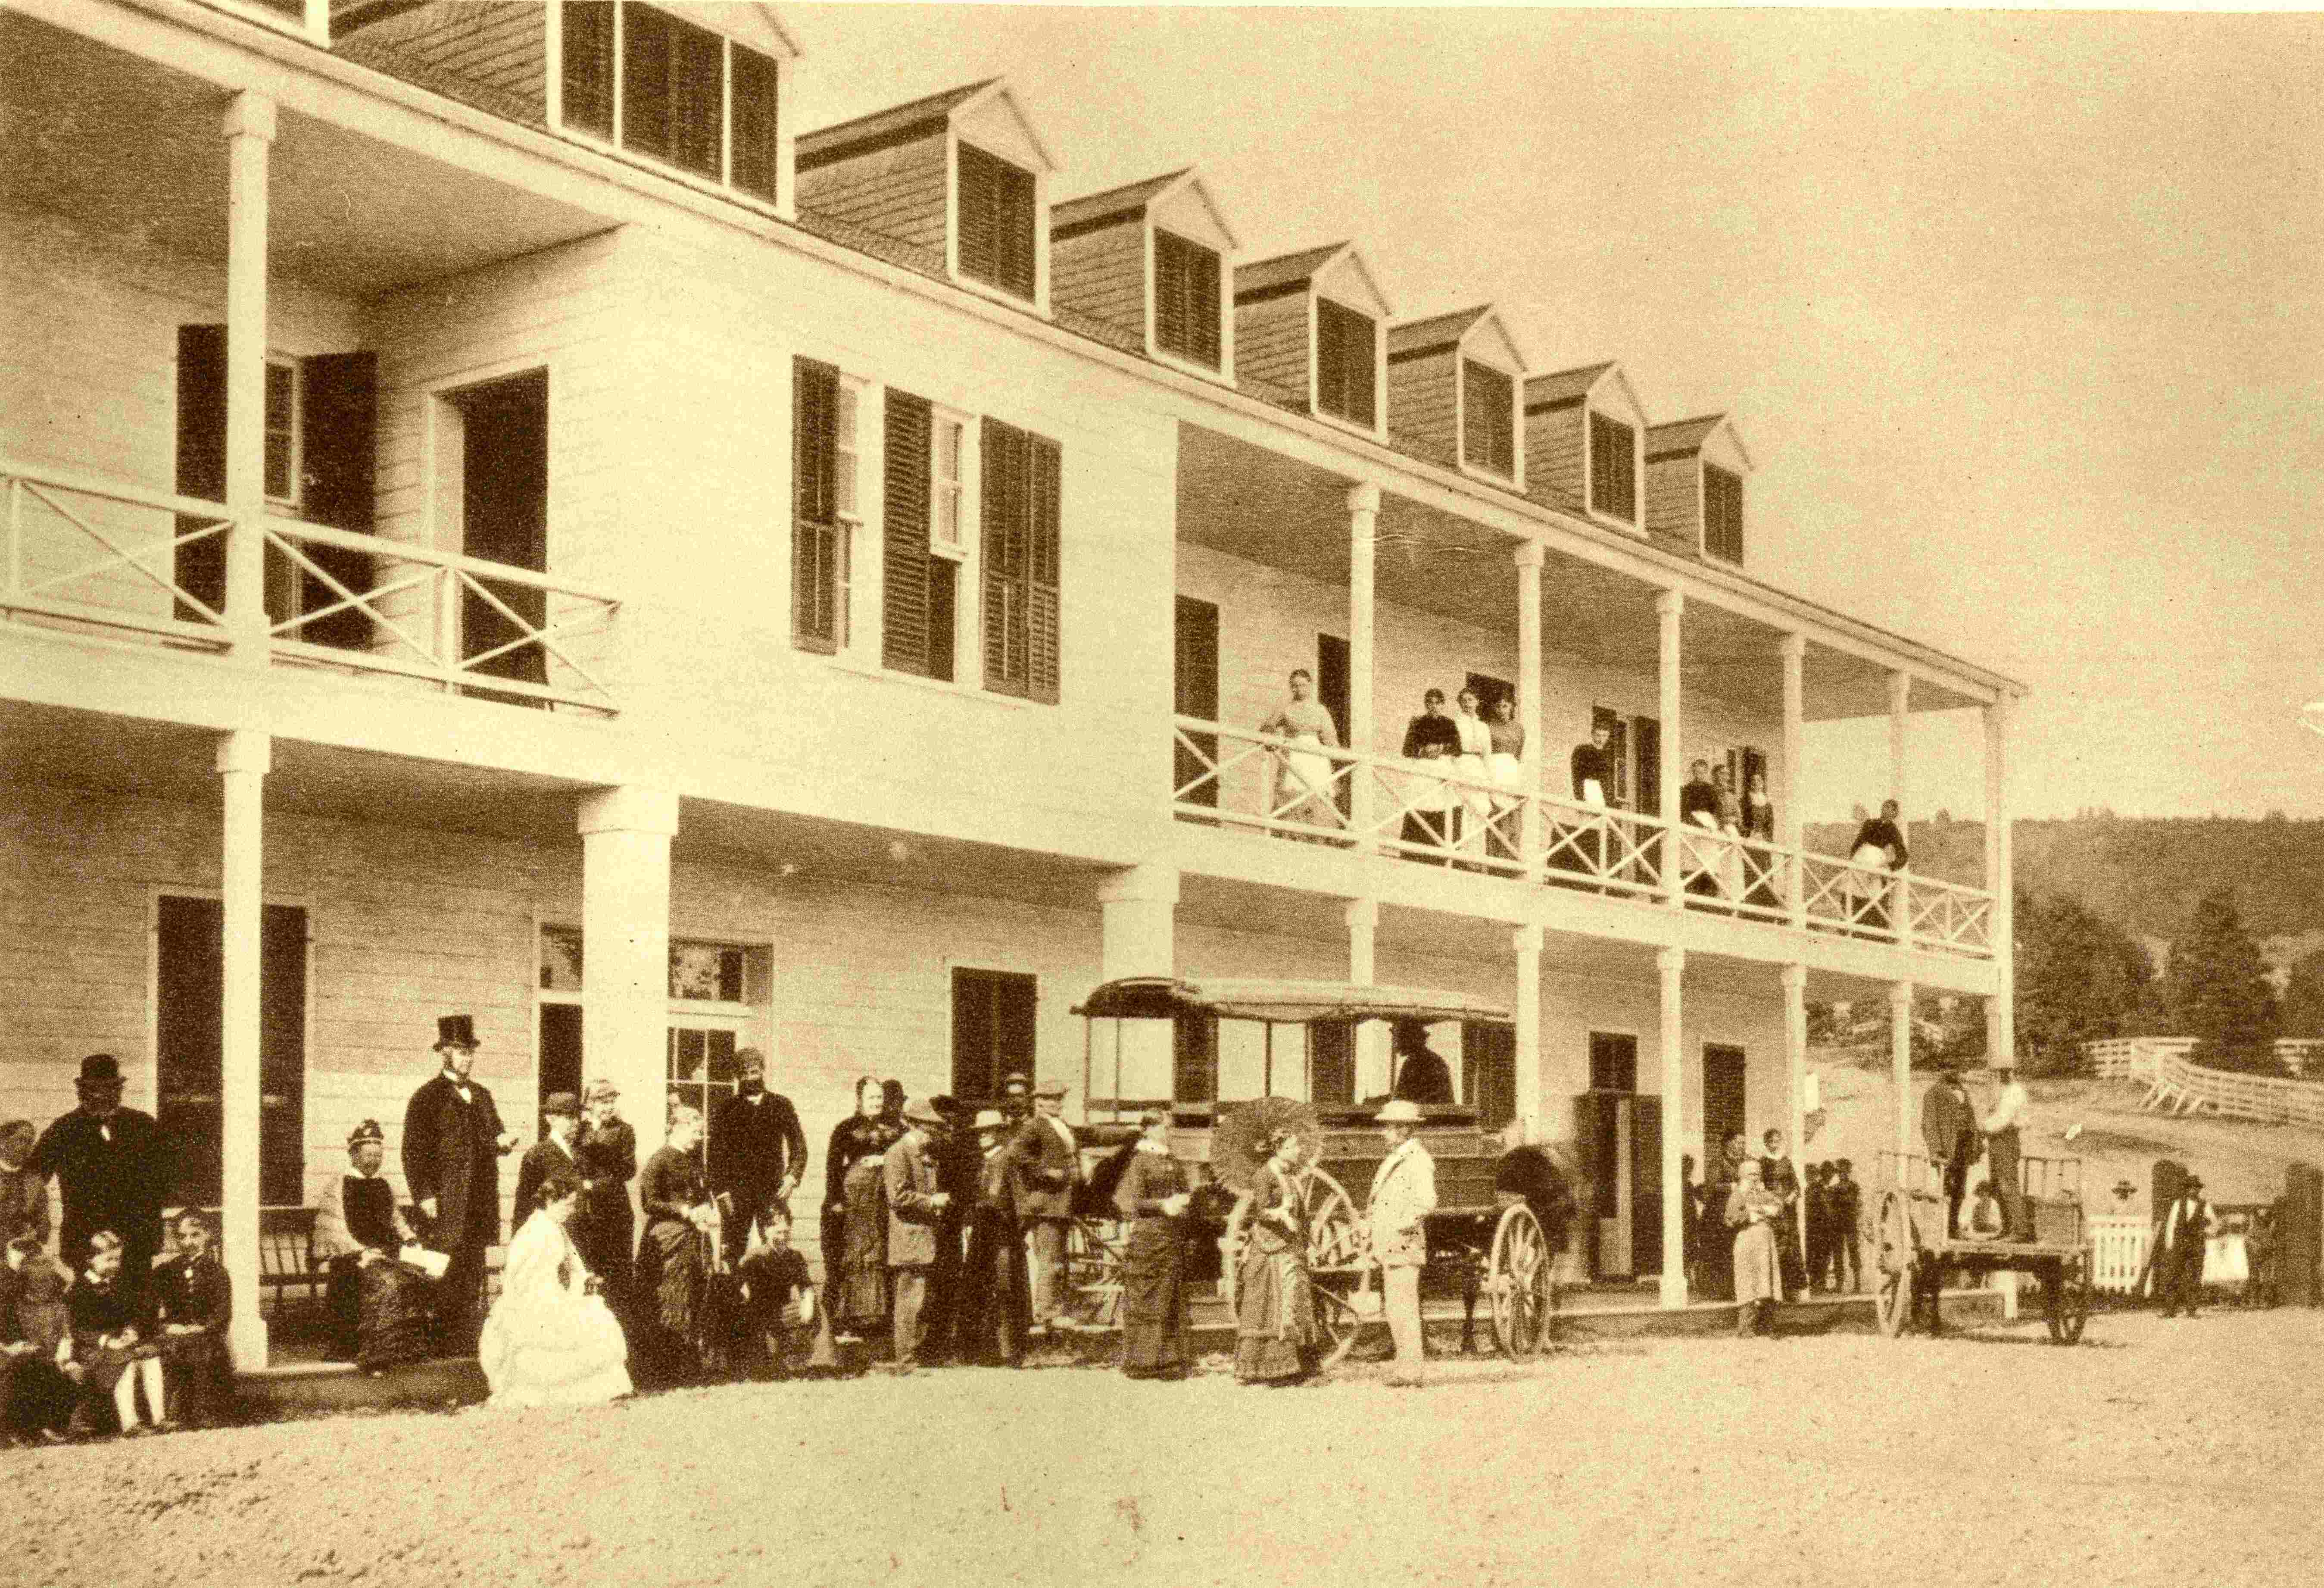 Clients milling in front of a hotel and a horse-drawn omnibus for transporting passengers.